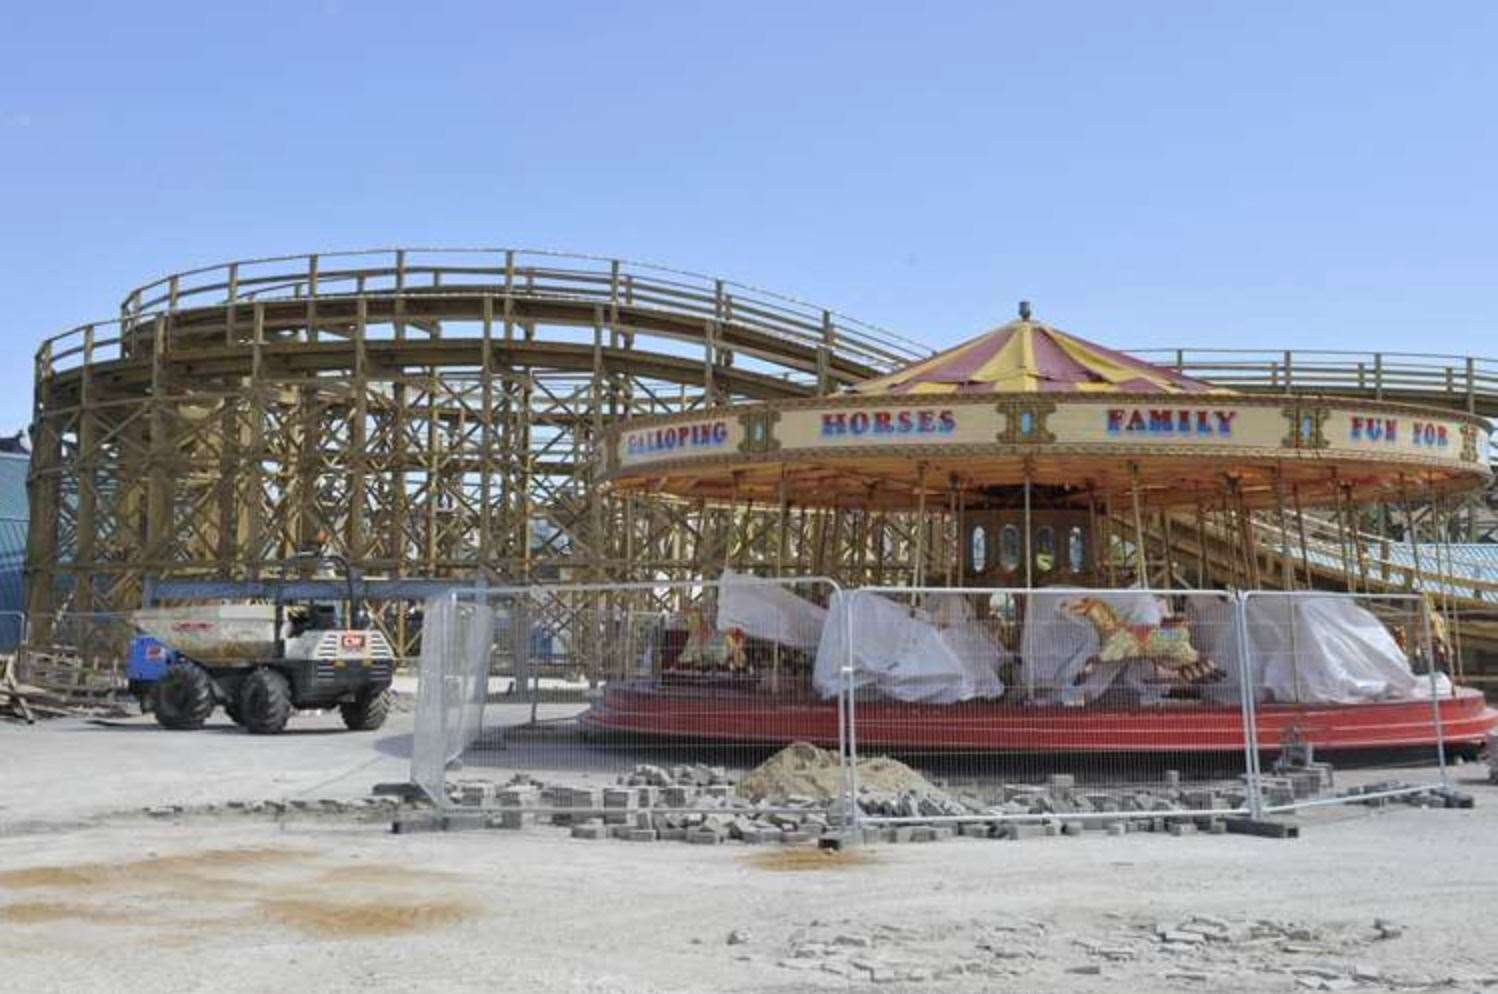 During the renovation of Dreamland.